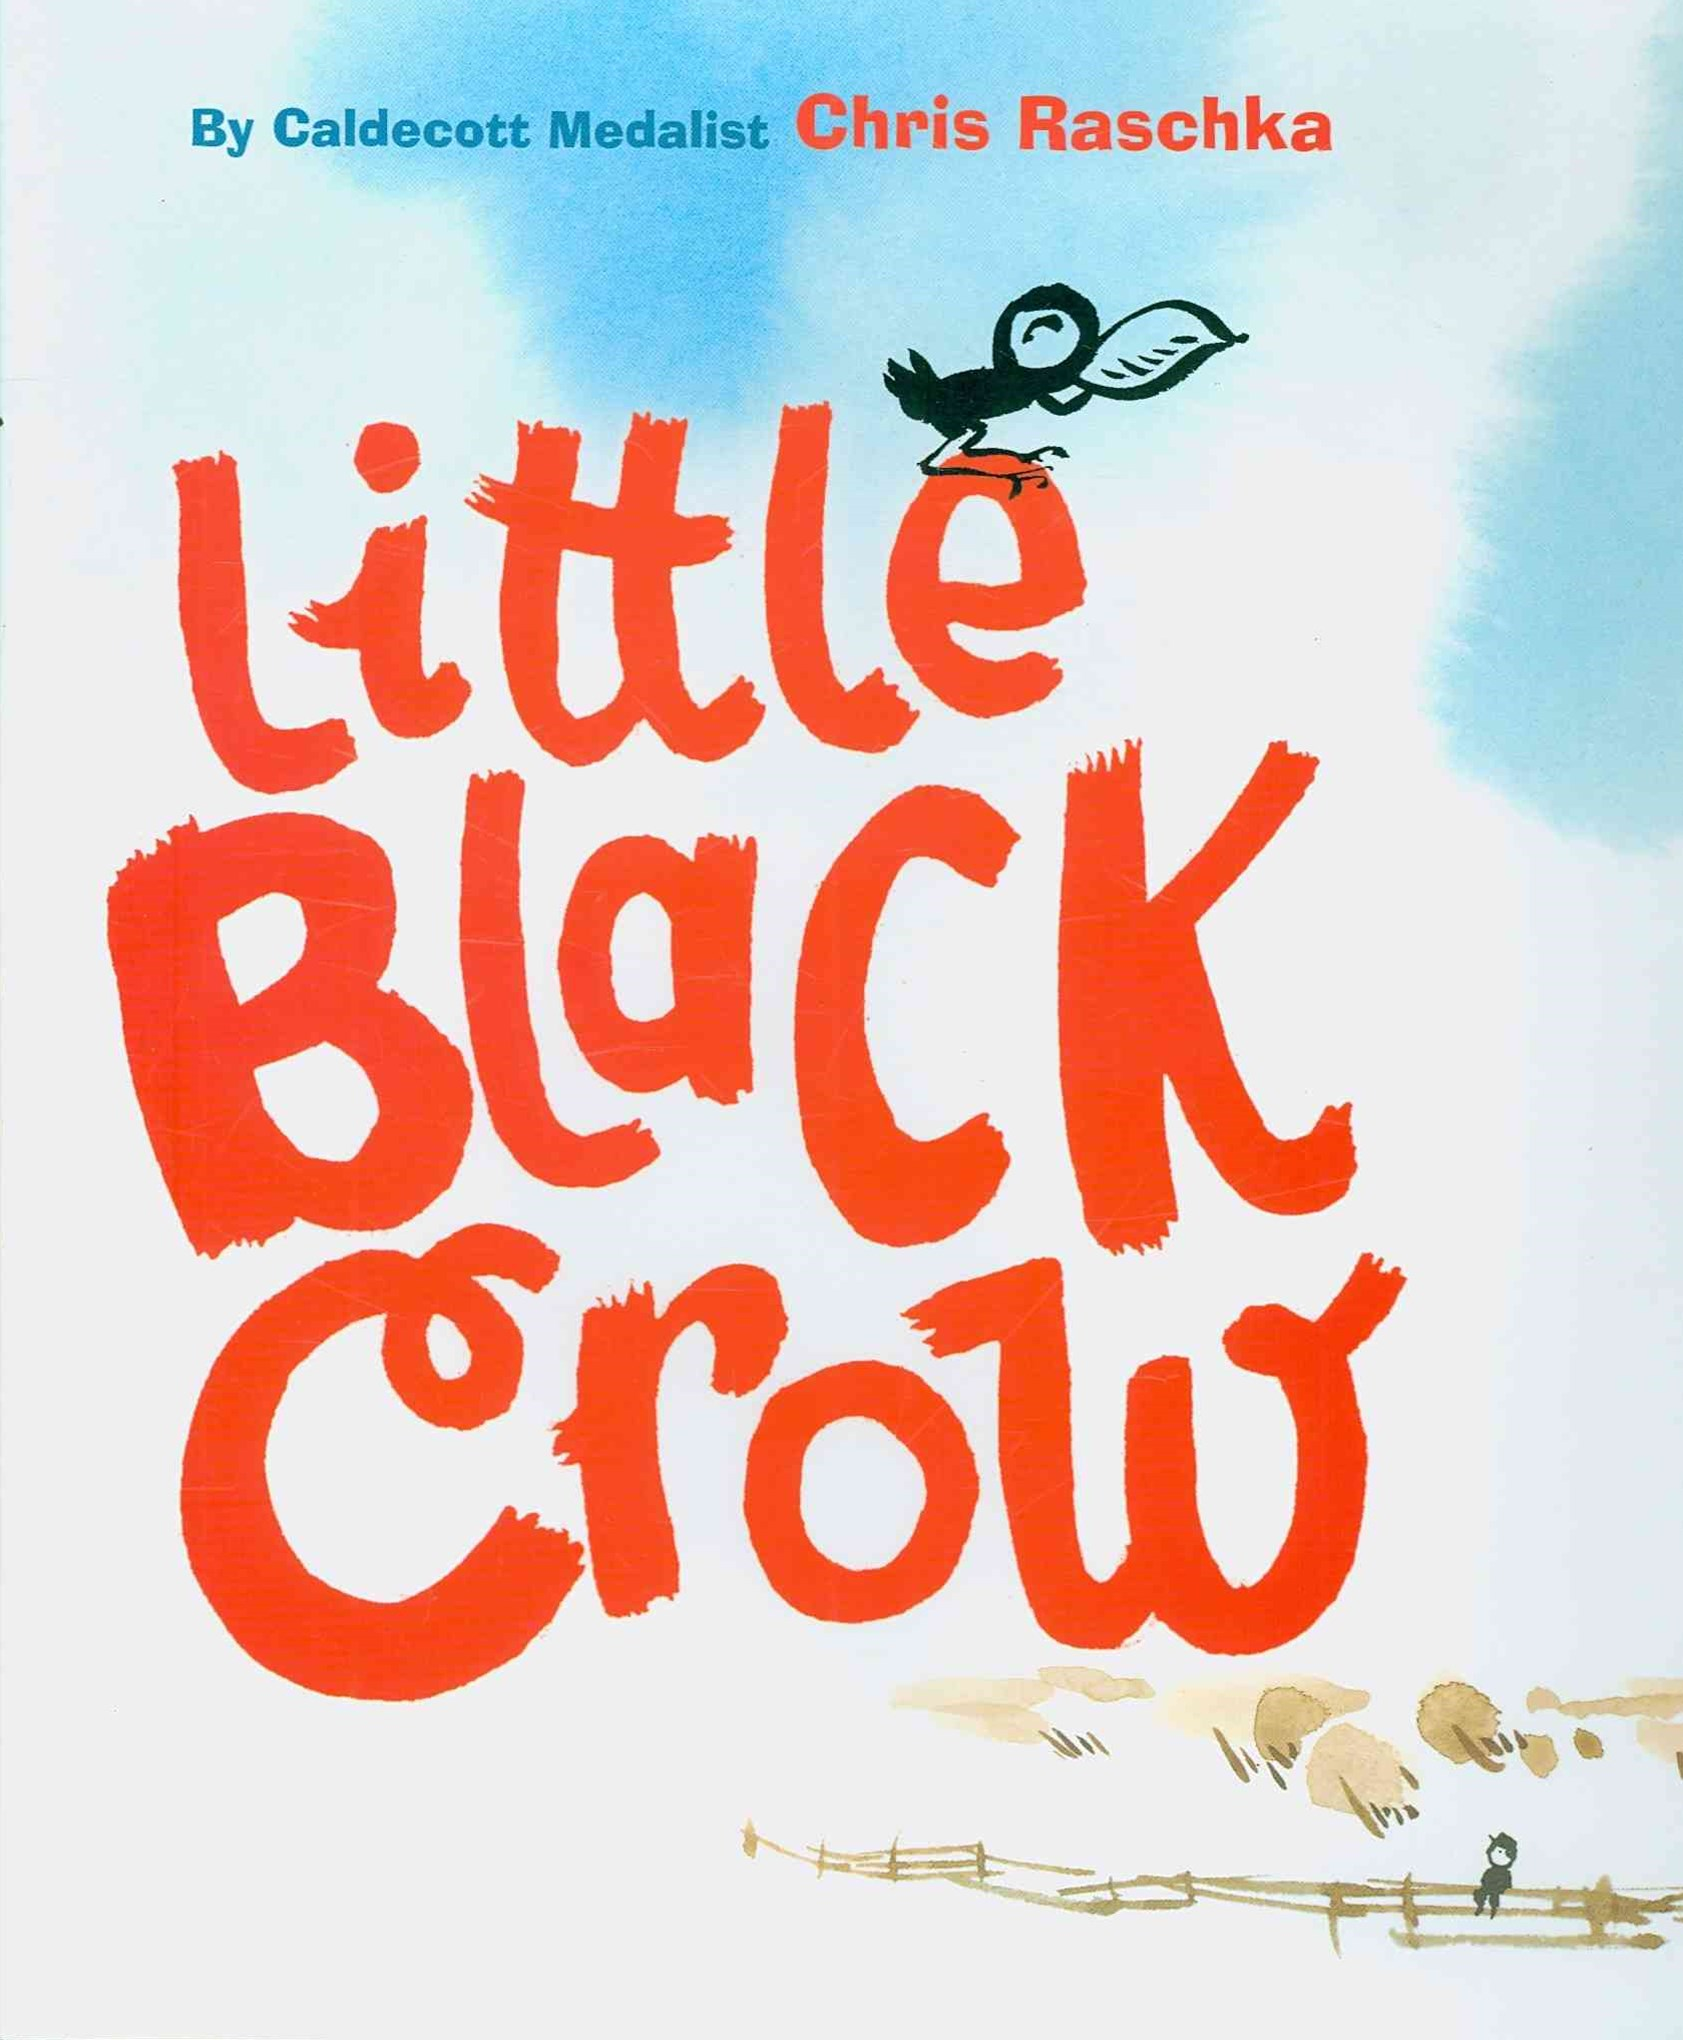 Little Black Crow